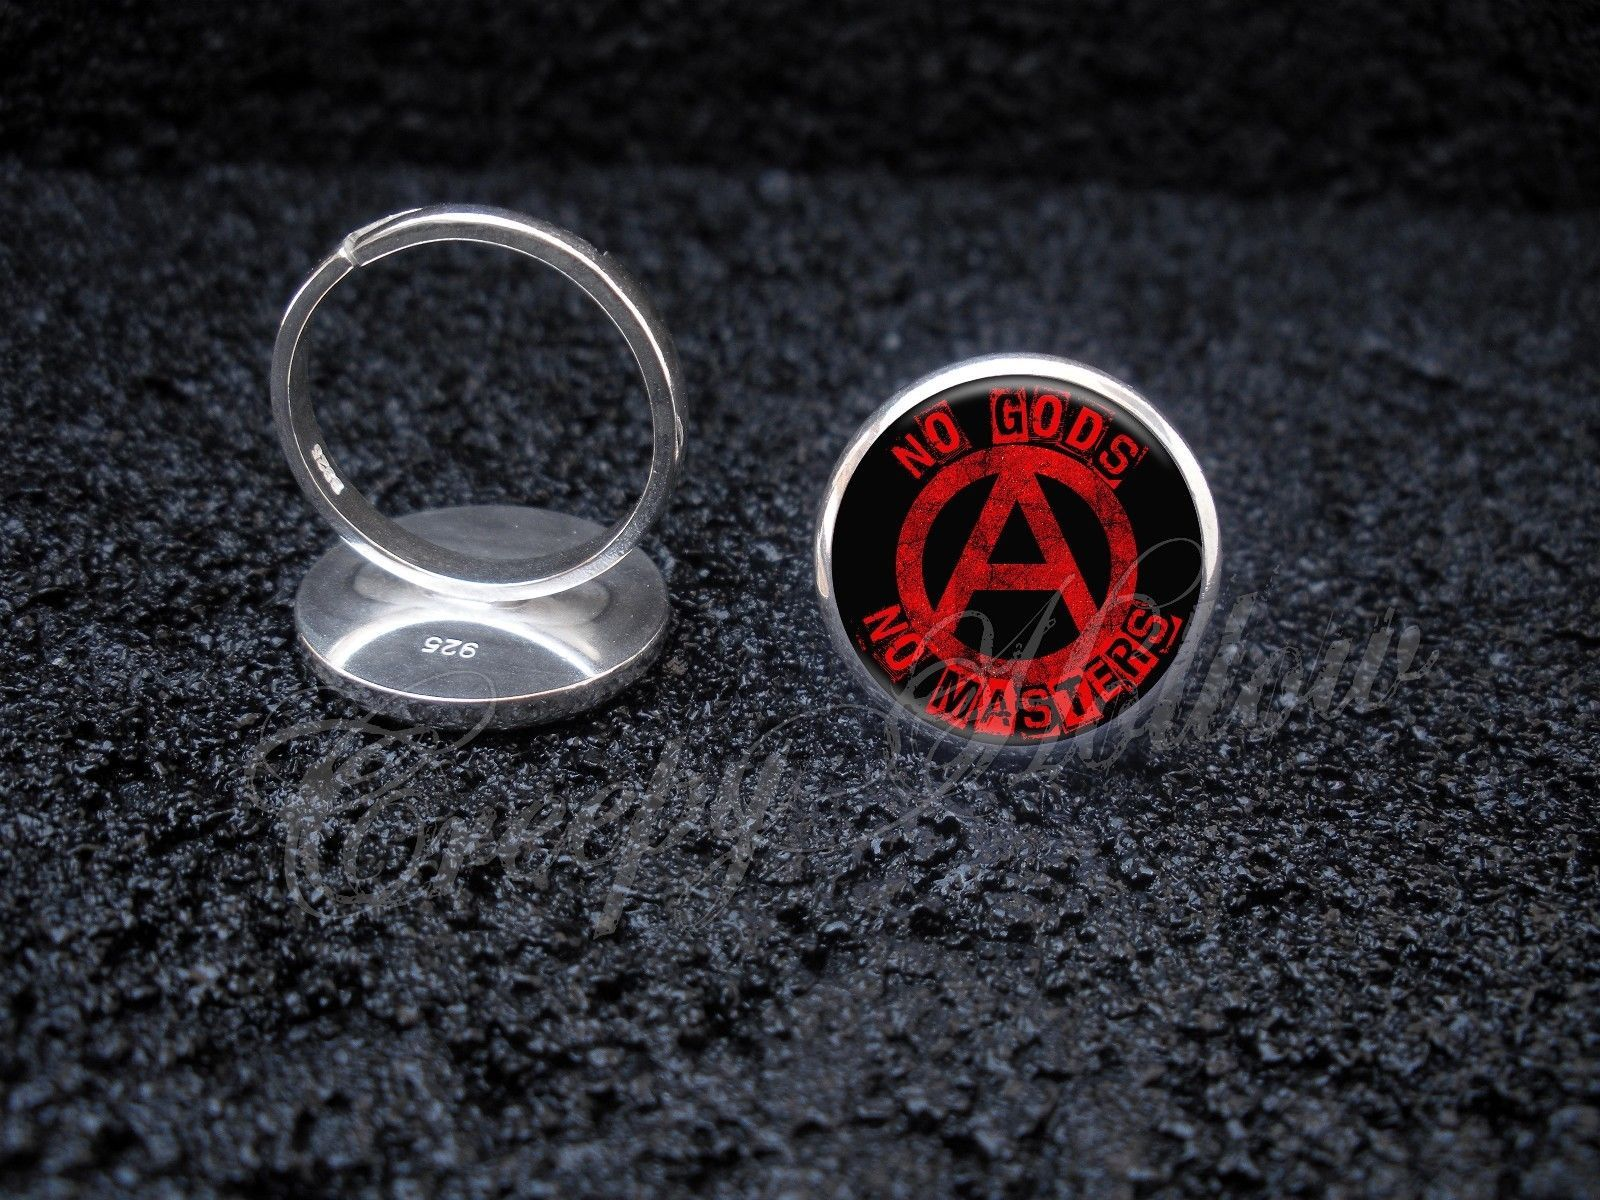 Primary image for 925 Sterling Silver Adjustable Ring No Gods No Masters slogan Anarchist Anarchy